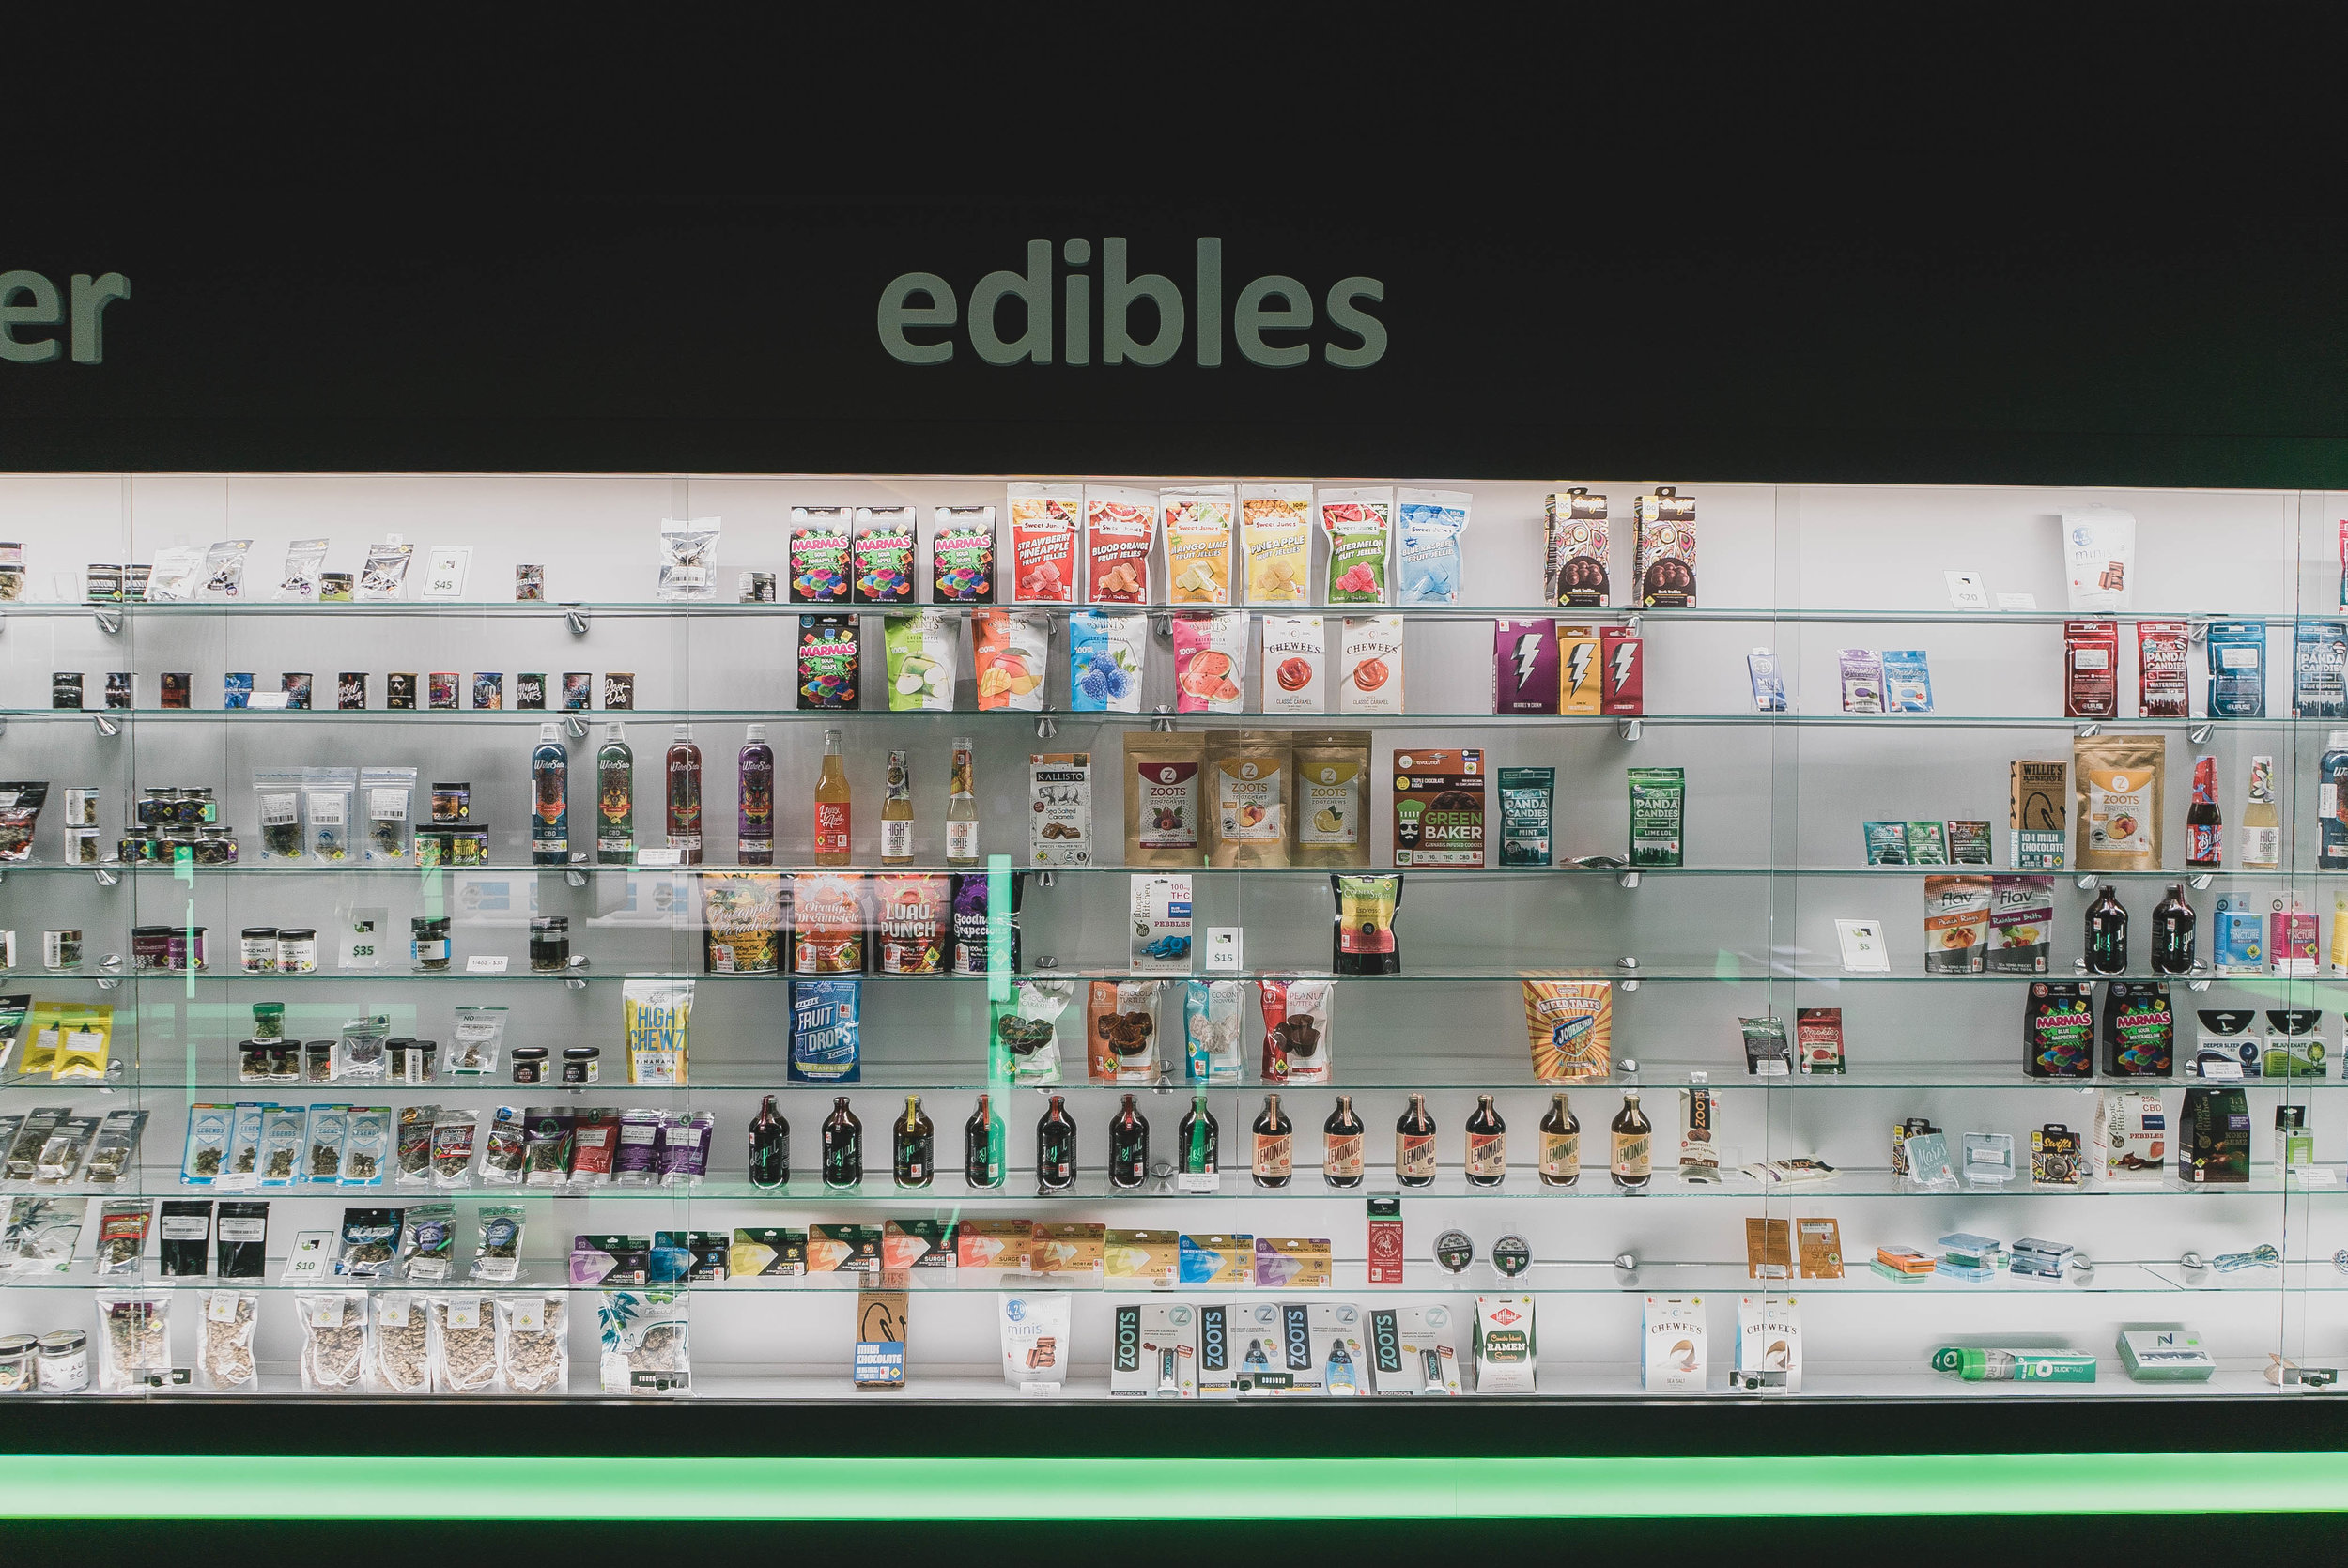 EDIBLES - Our wide selection of edibles includes brownies, sodas, tinctures, coffee, candy & way more than you could ever want.